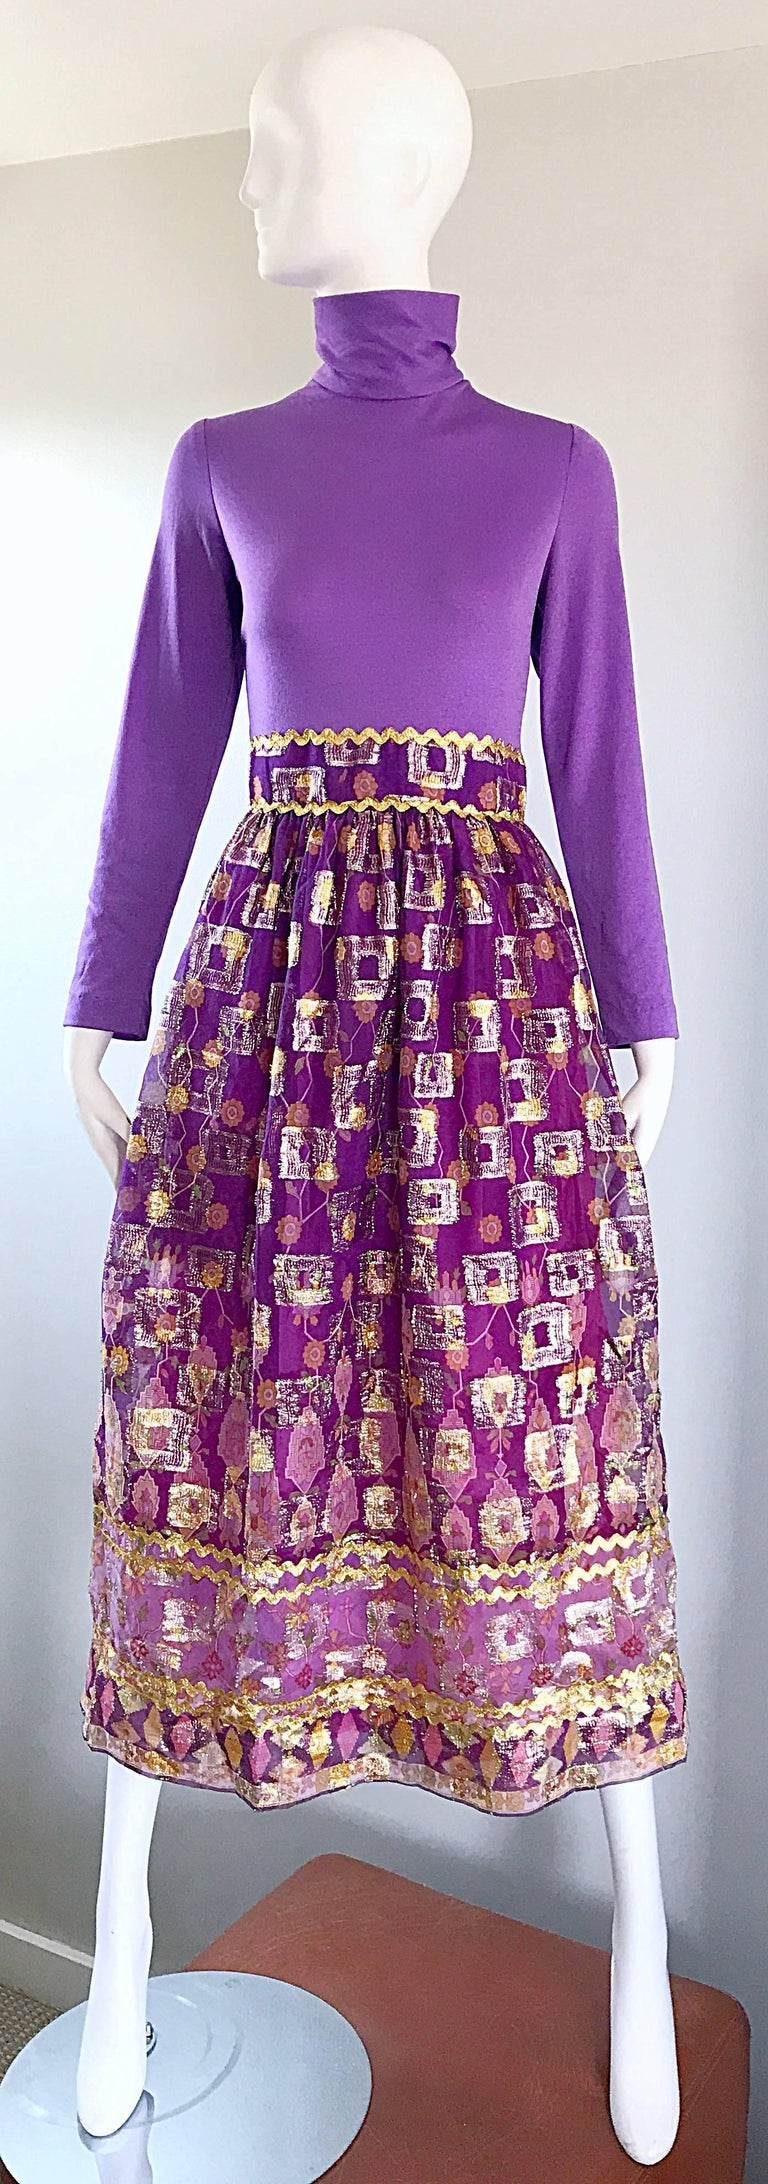 Gorgeous 70s ethnic batik print high neck purple / lilac long sleeve ombre midi dress / gown! Features a fitted soft stretch jersey bodice, with a full metallic semi sheer chiffon skirt (fully lined). Hidden zipper up th eback with hook-and-eye